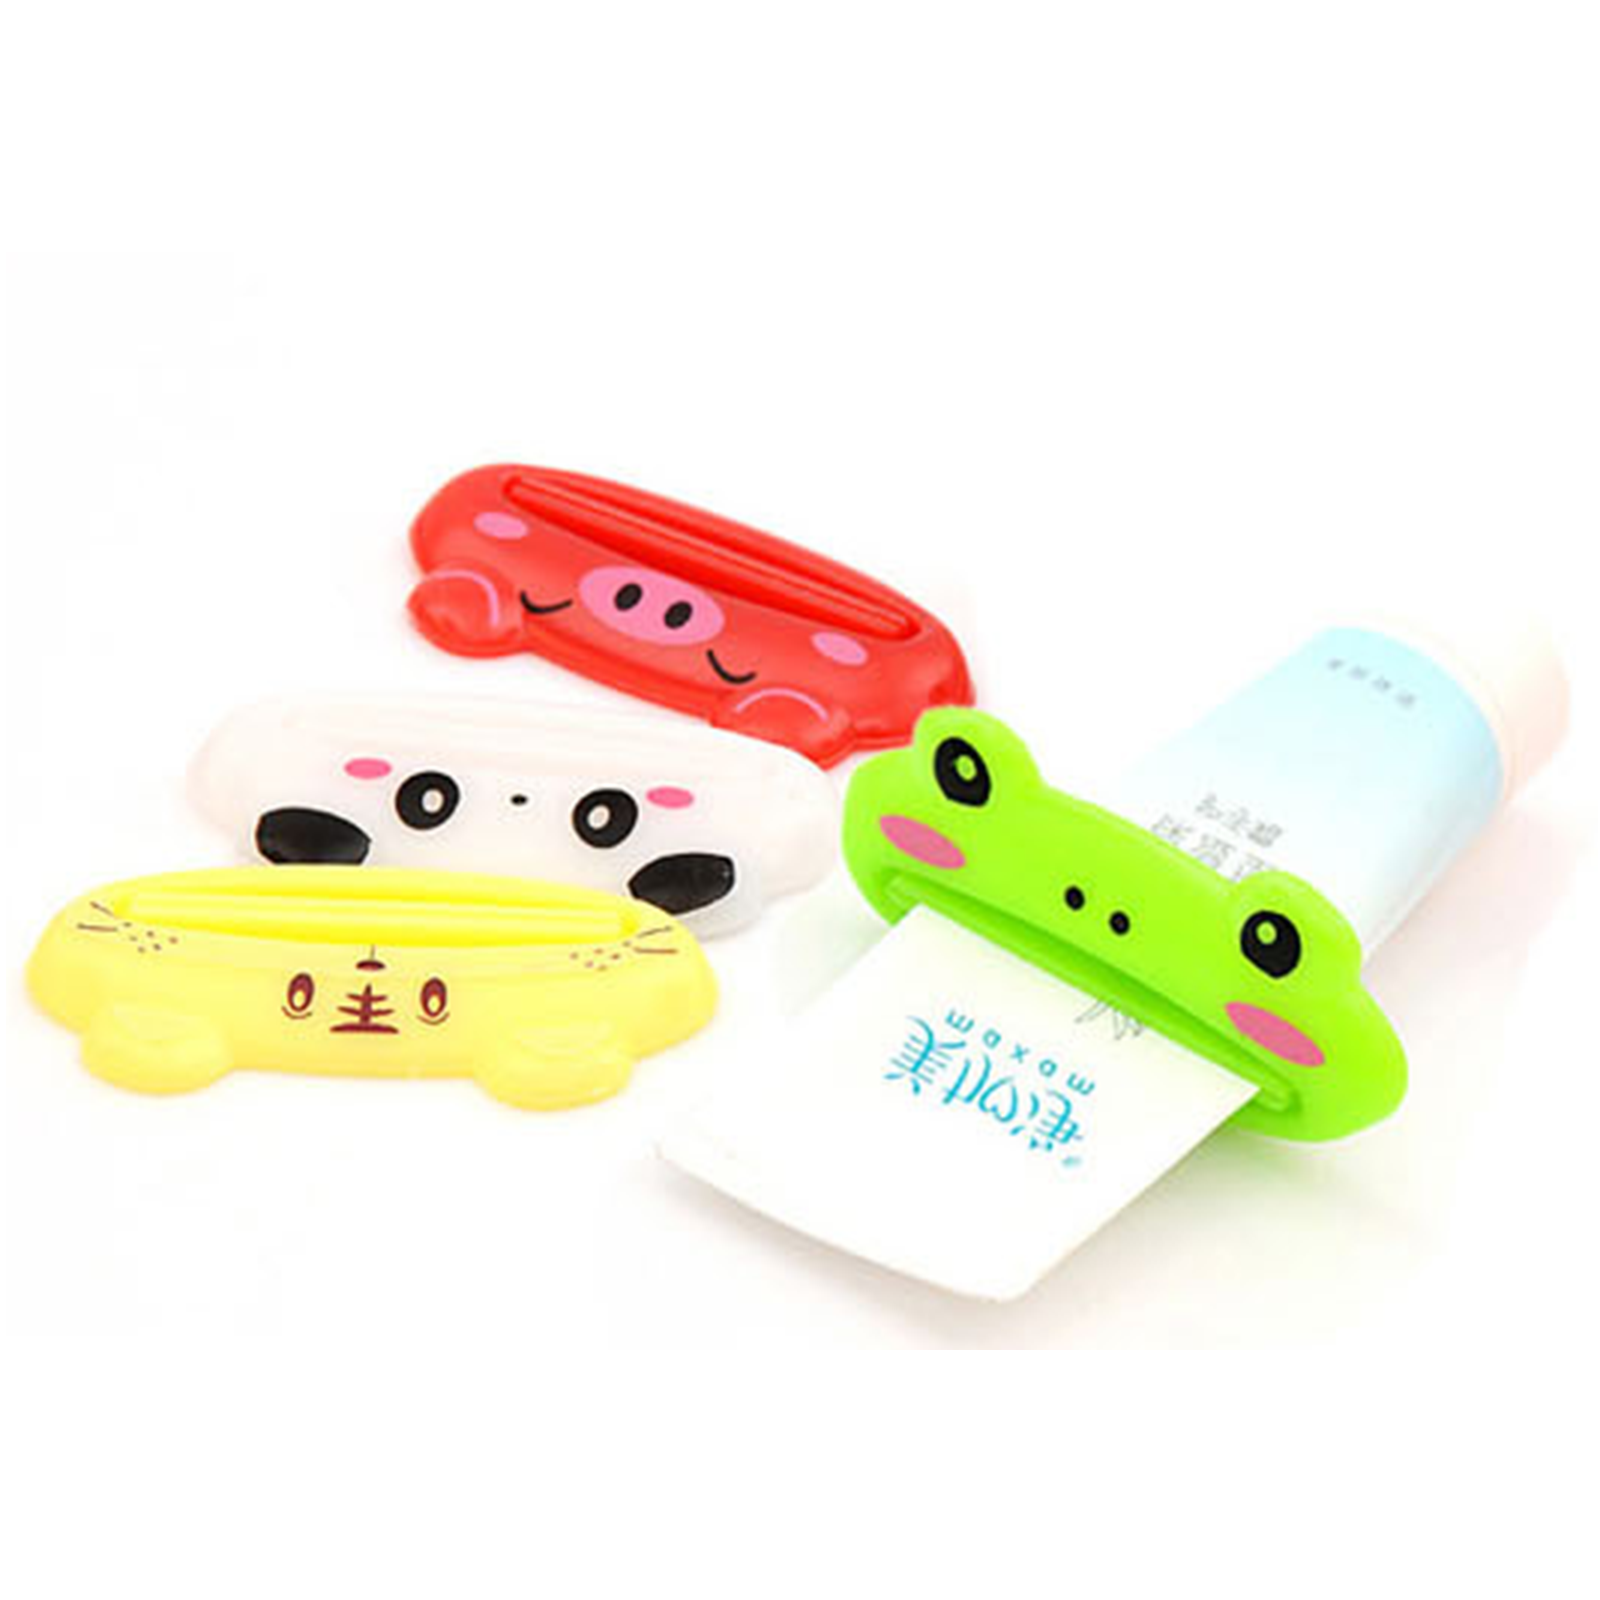 Toothpaste Squeezer Cute Animal Toothpaste Dispenser Home Commodity Bathroom Tube Rolling Holder Bathroom Toohthpaste Squeezer